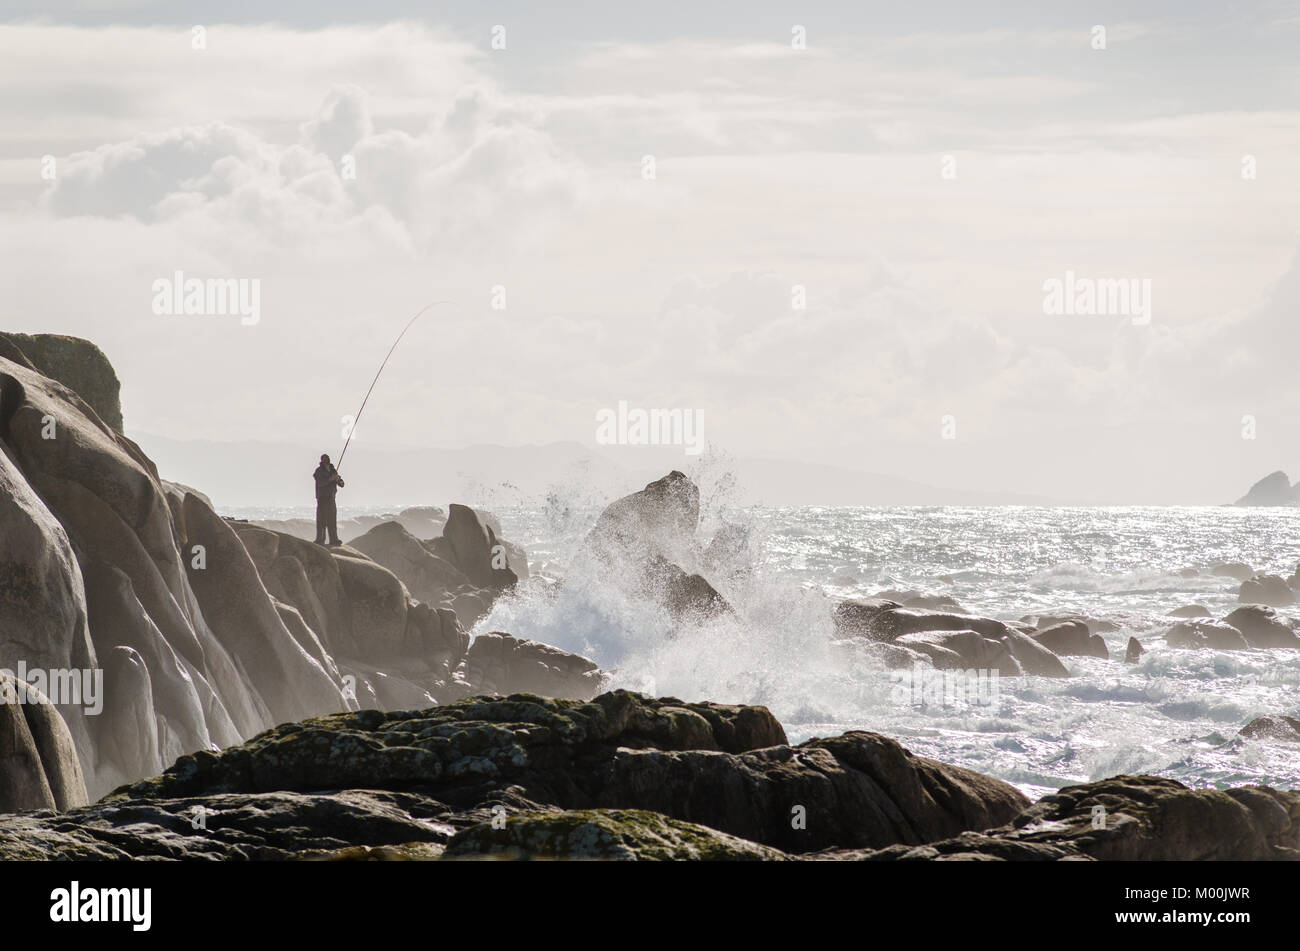 Fisherman fishing on coastline rocks. Brown tones. Waves crashing - Stock Image